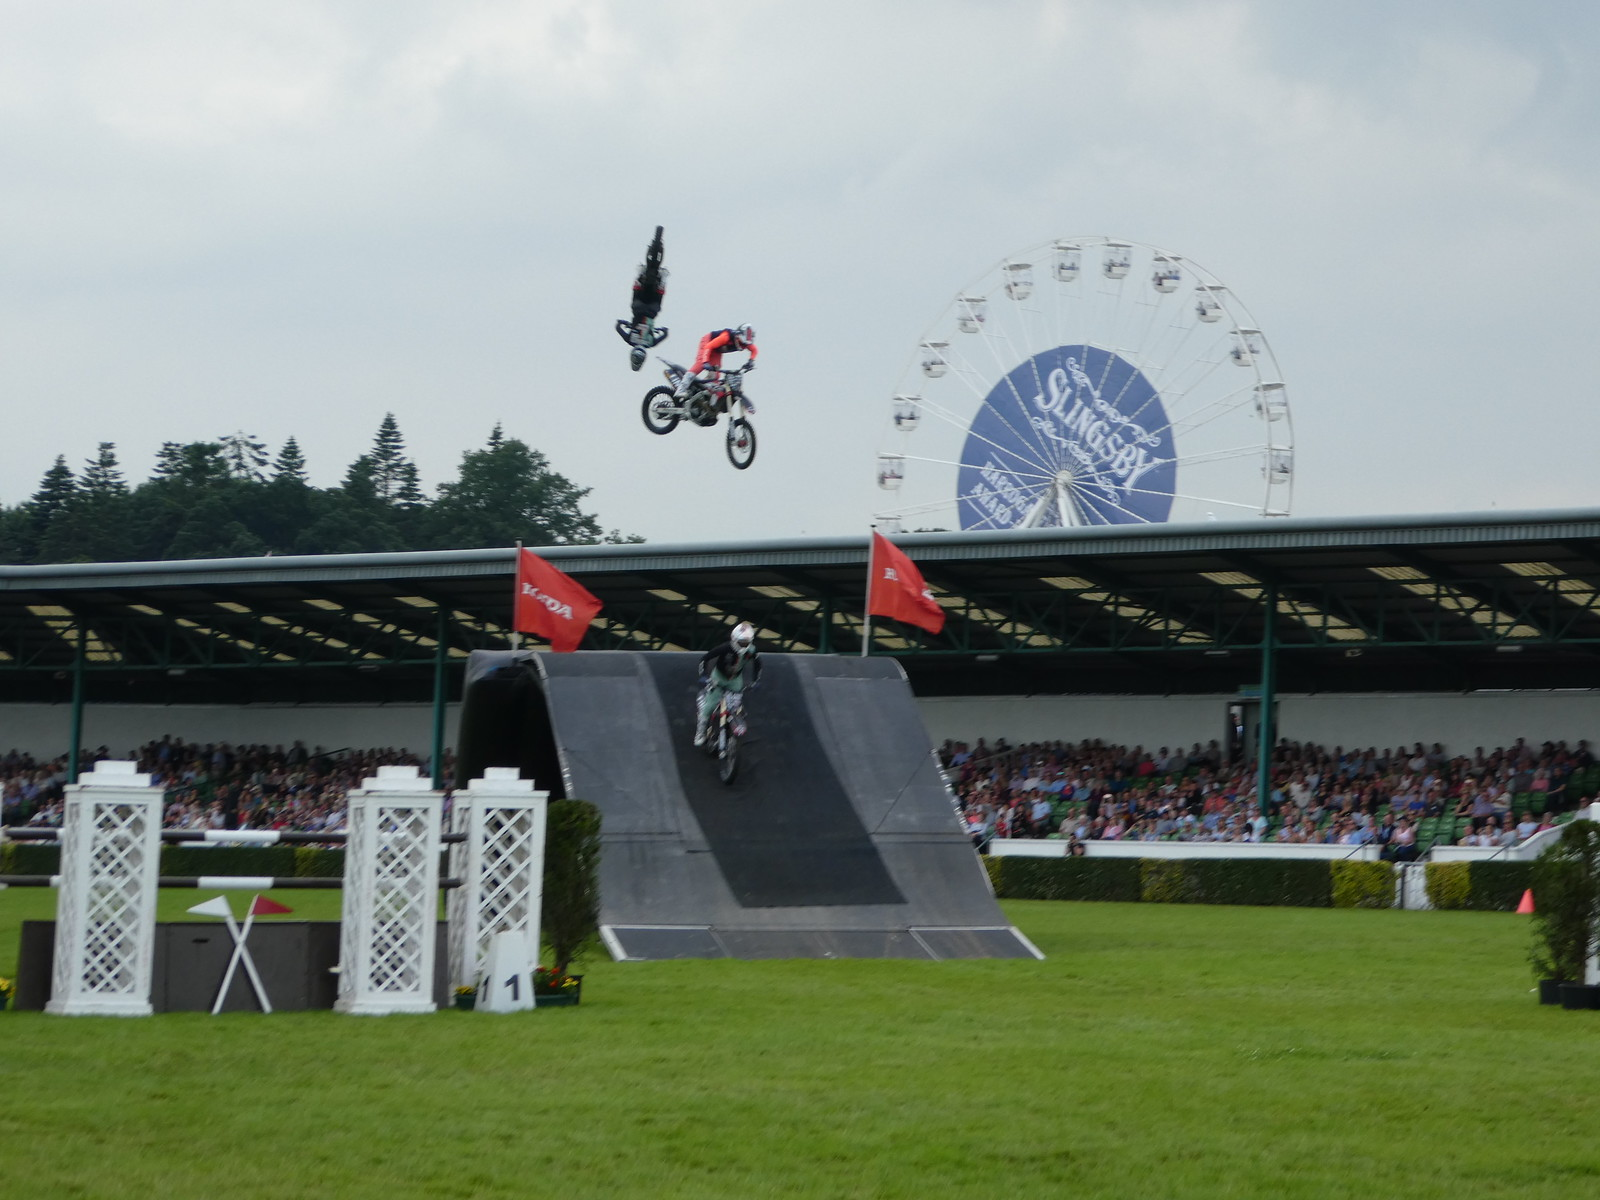 The Bolddog Lings Motorcycle stunt team performing at the Great Yorkshire Show, Harrogate